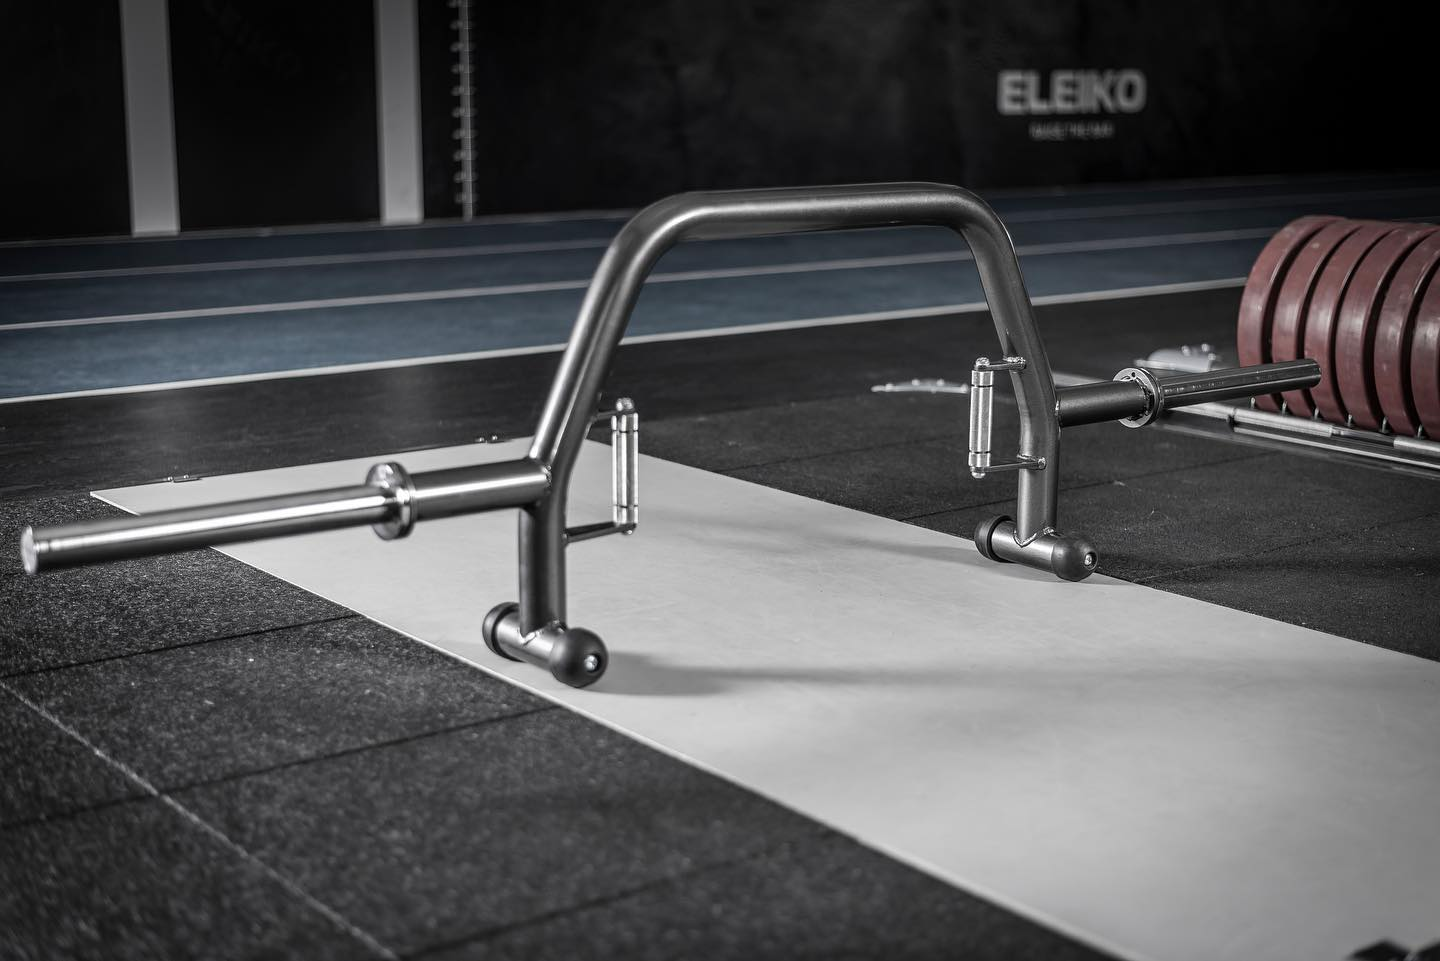 An Eleiko Oppen deadlift bar